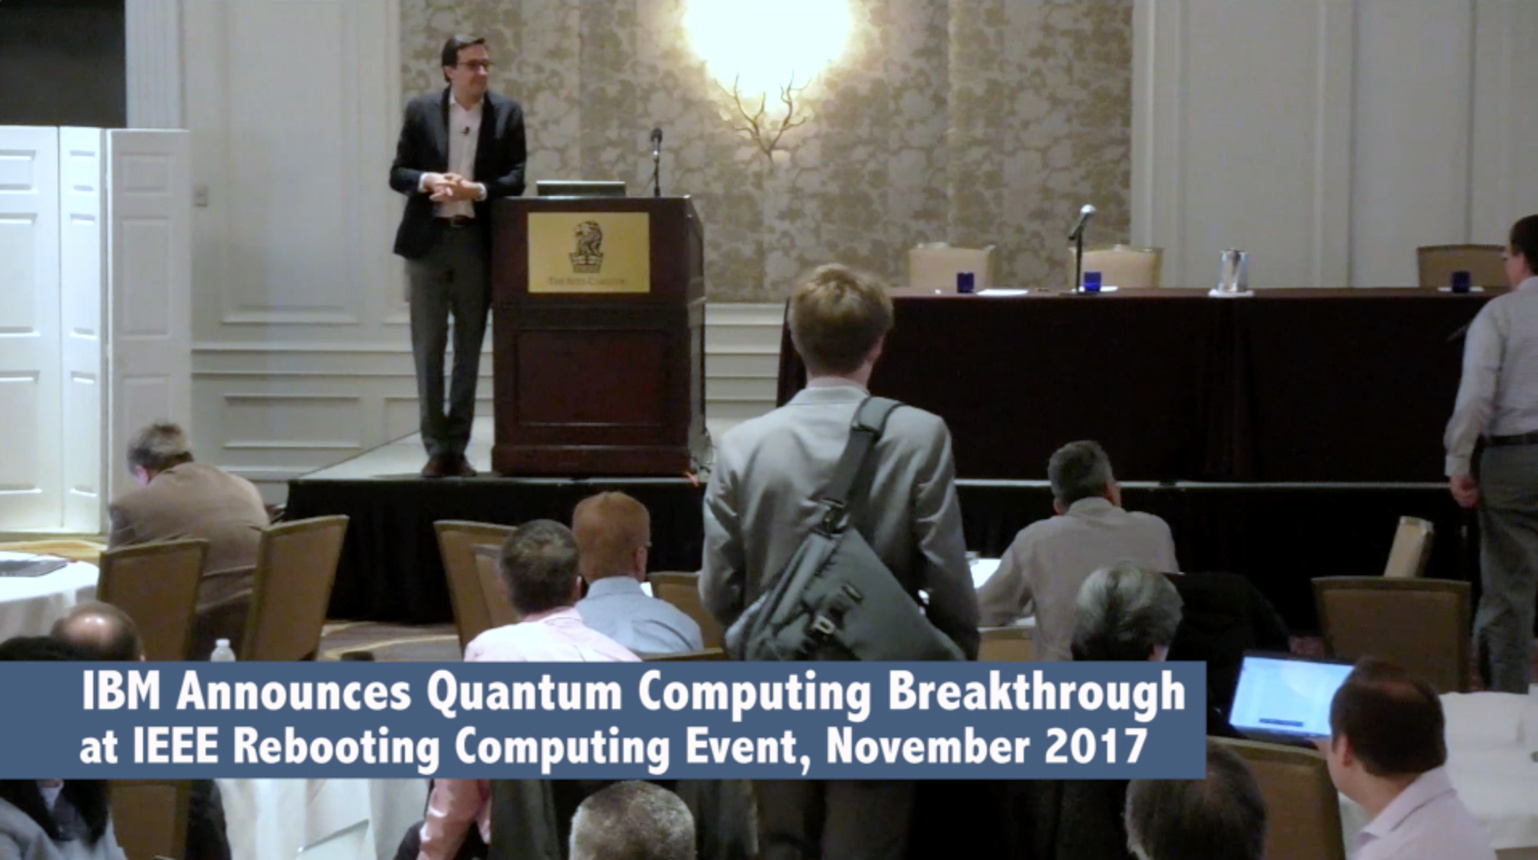 IBM Announces Quantum Computing Breakthrough at IEEE Rebooting Computing Event